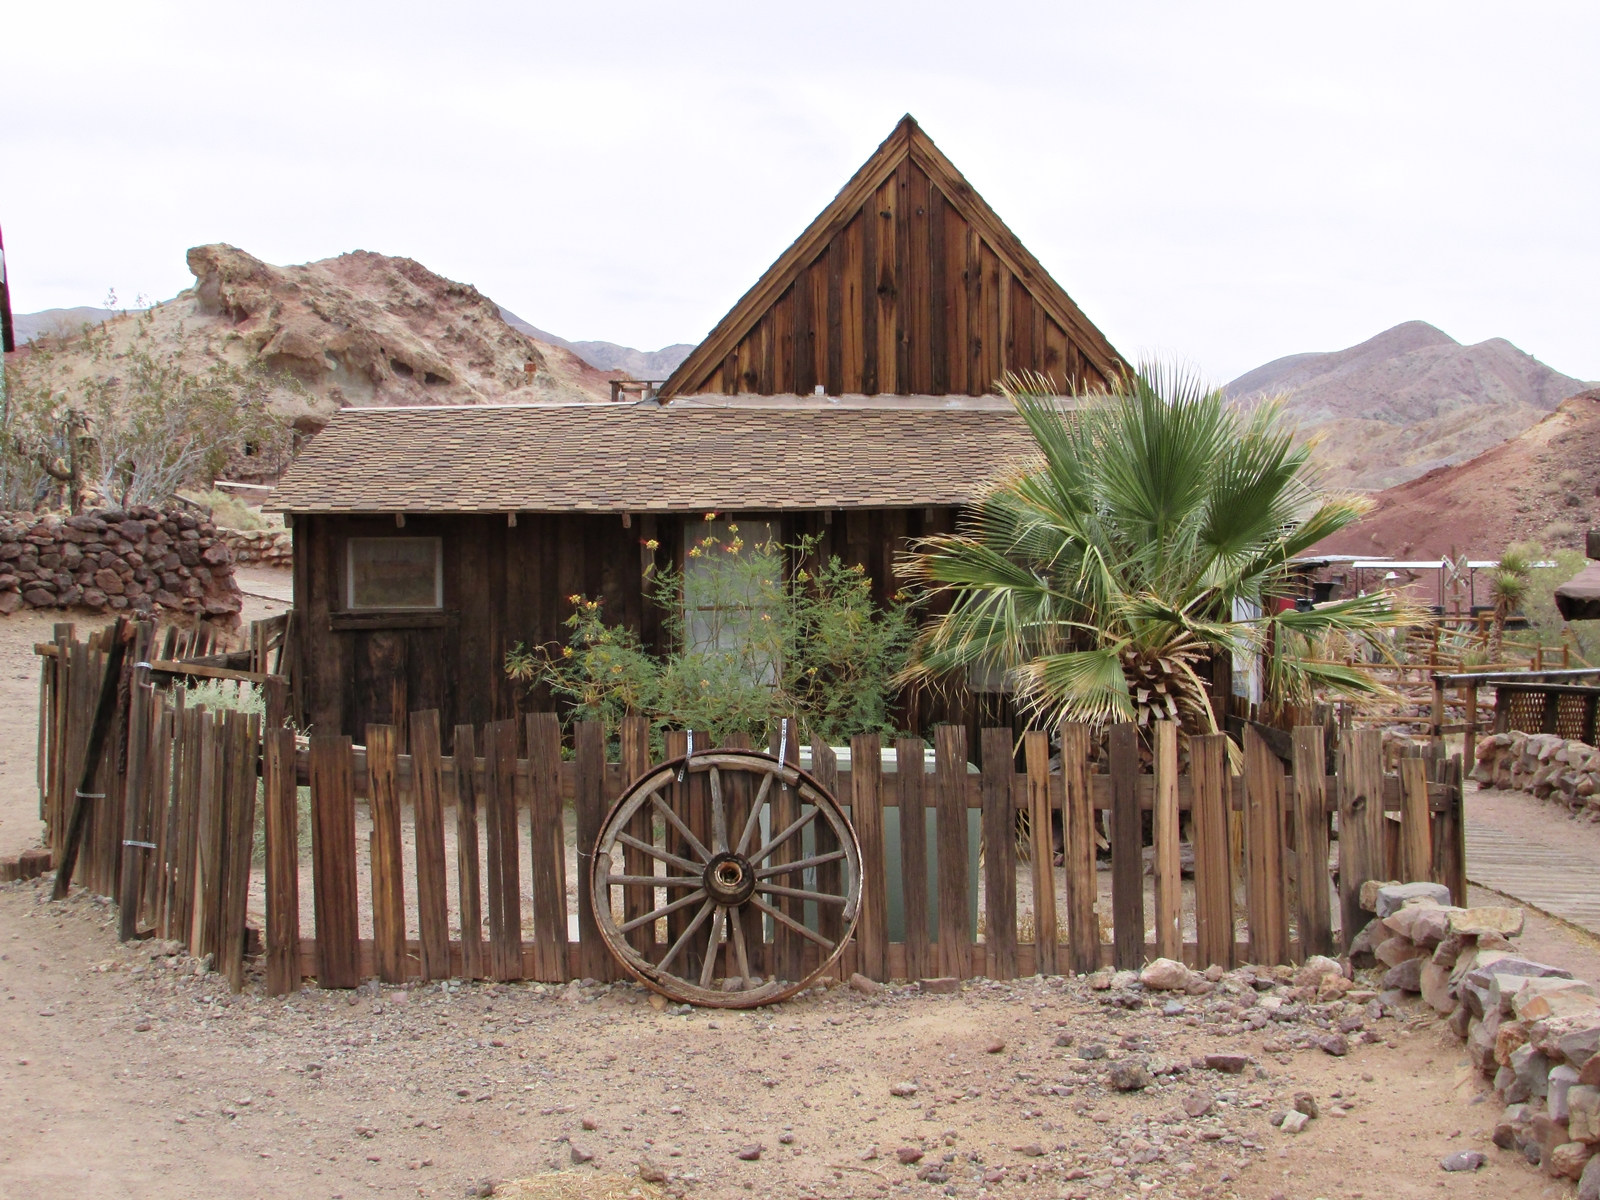 Calico Ghost town - usa rundreise - geisterstadt in der Mojave Wüste - Roadtrip - Fashionladyloves by Tamara Wagner Travelblog